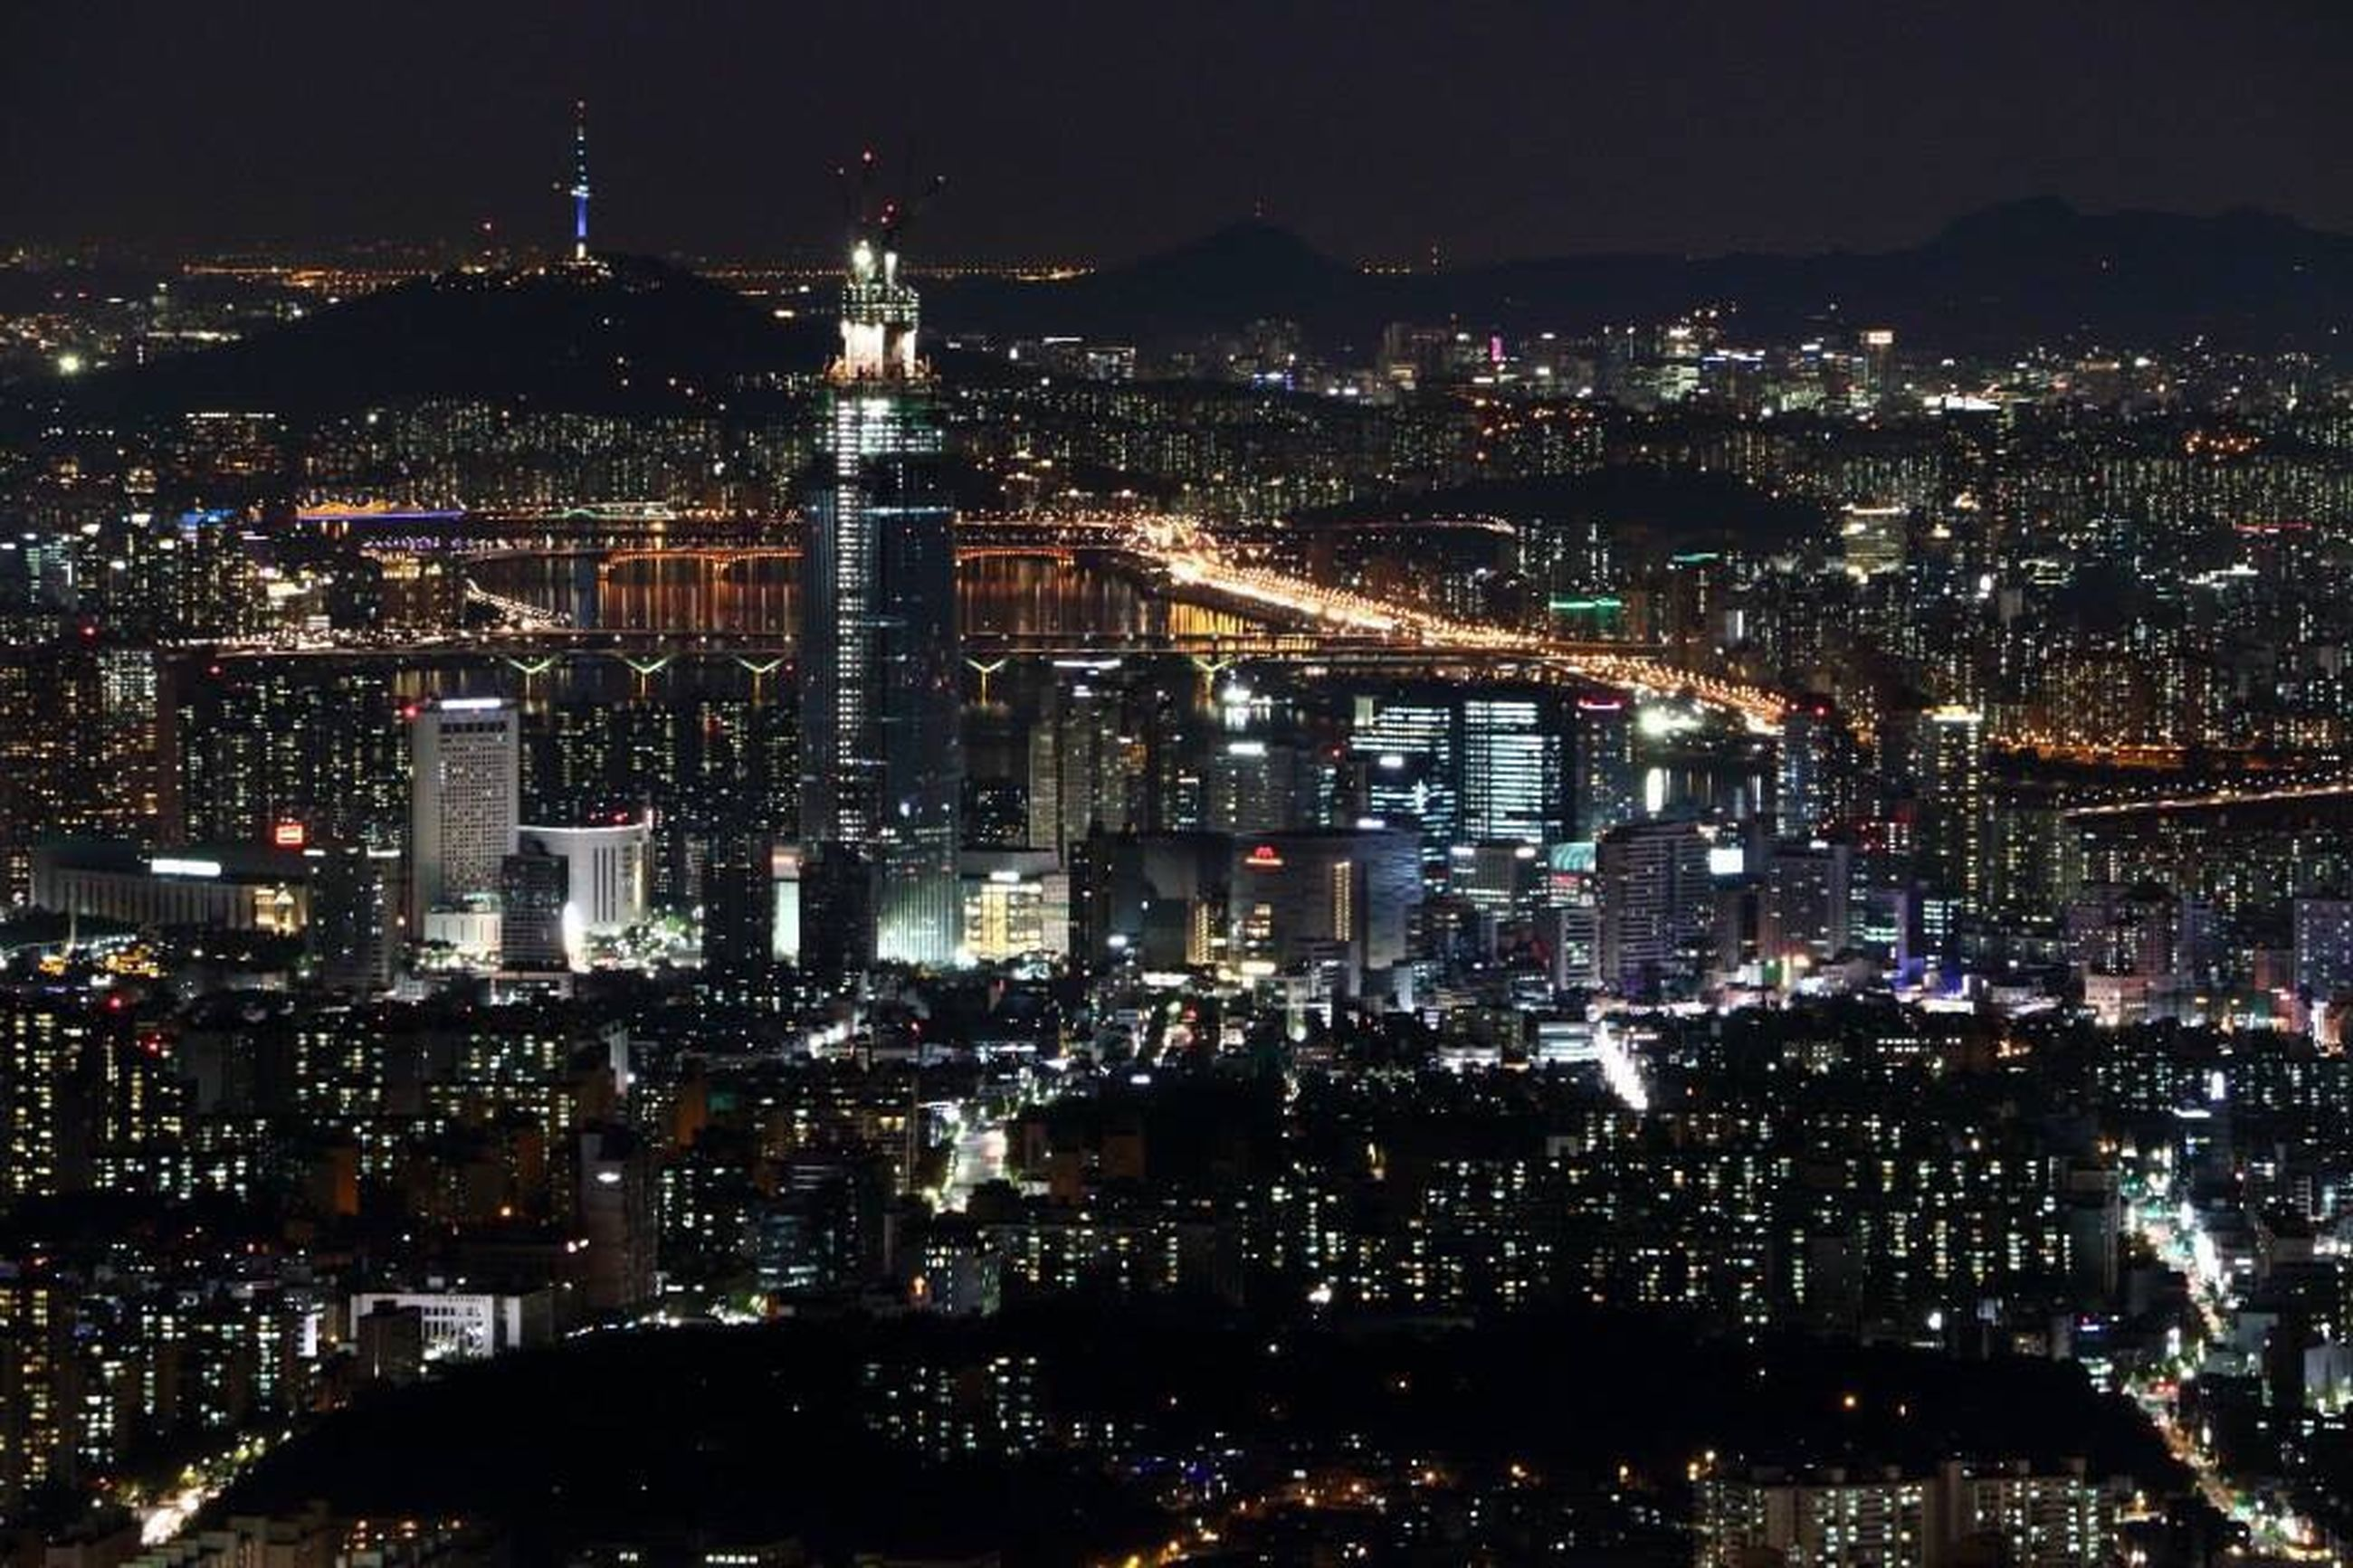 cityscape, night, illuminated, city, architecture, crowded, building exterior, built structure, skyscraper, high angle view, modern, aerial view, residential district, city life, capital cities, tower, tall - high, sky, travel destinations, office building